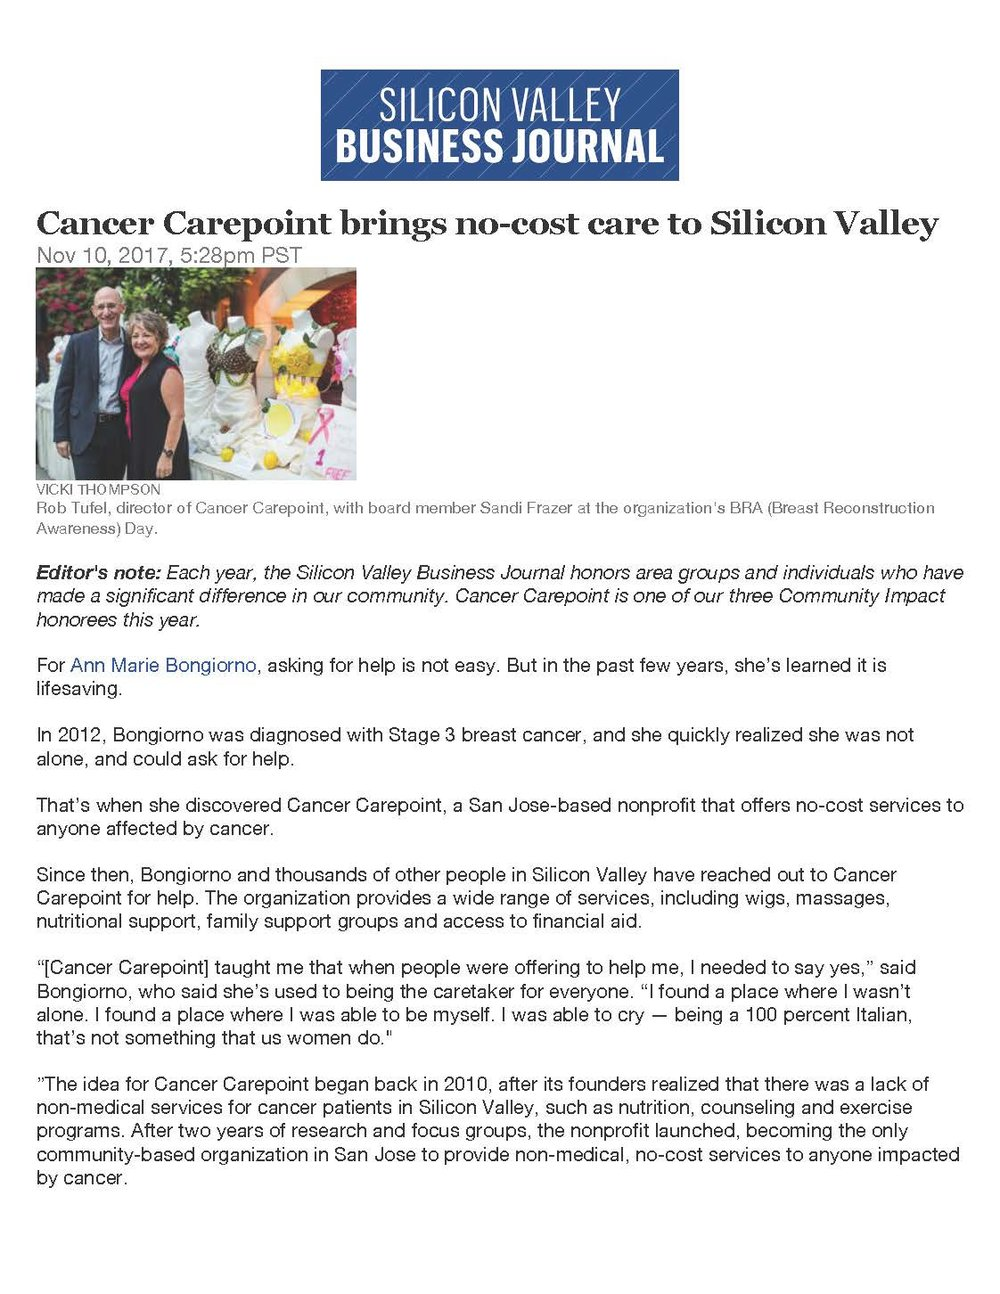 Community Impact Award Recipient! - Cancer CAREpoint was awarded the 2017 Community Impact Award by the Silicon Valley Business Journal!  Check out the article featured in their Giving Guide all about our work!